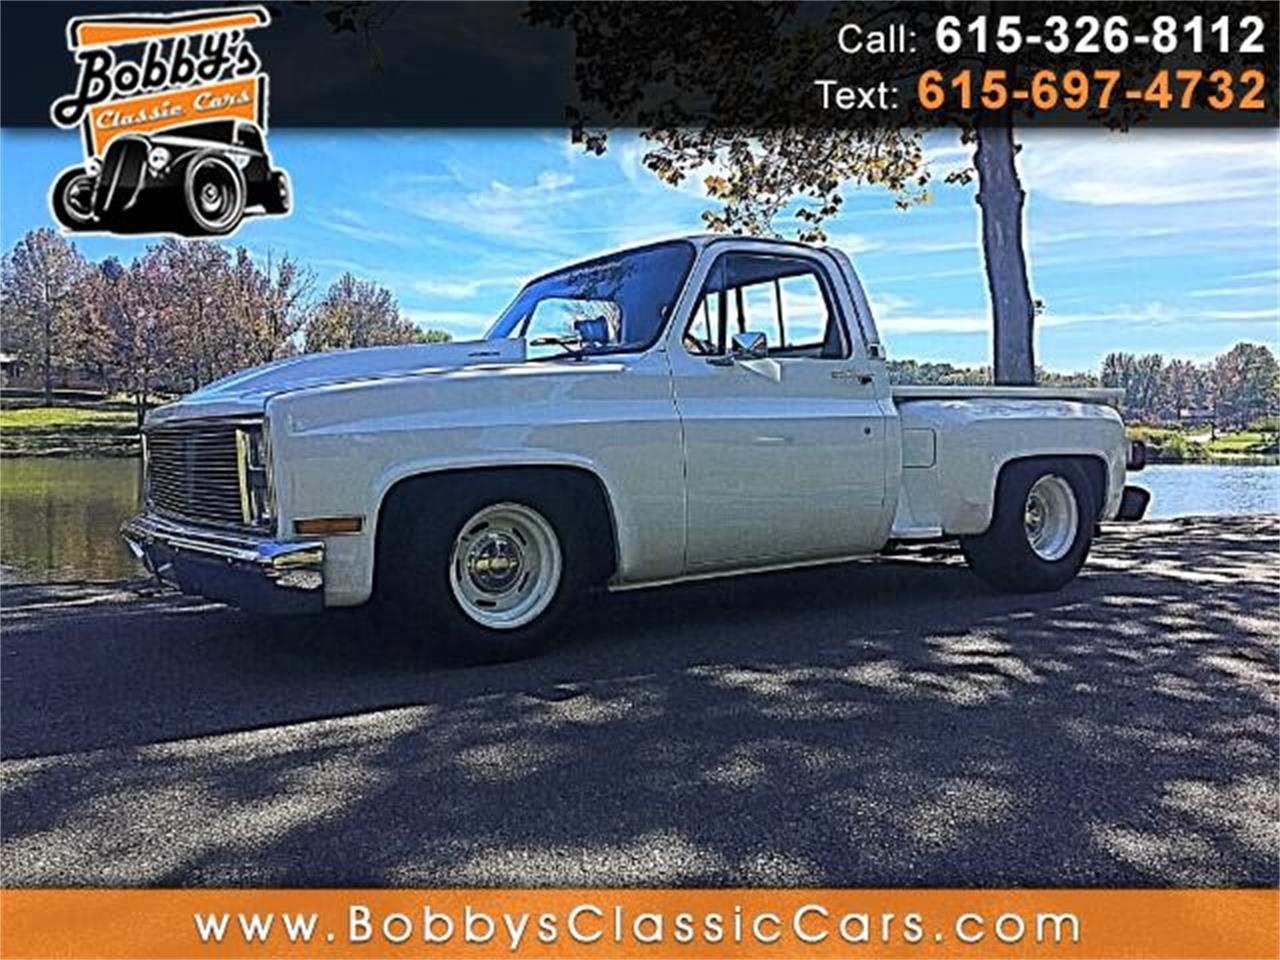 Large Picture of '87 GMC 1500 located in Tennessee - $19,990.00 - MEUI